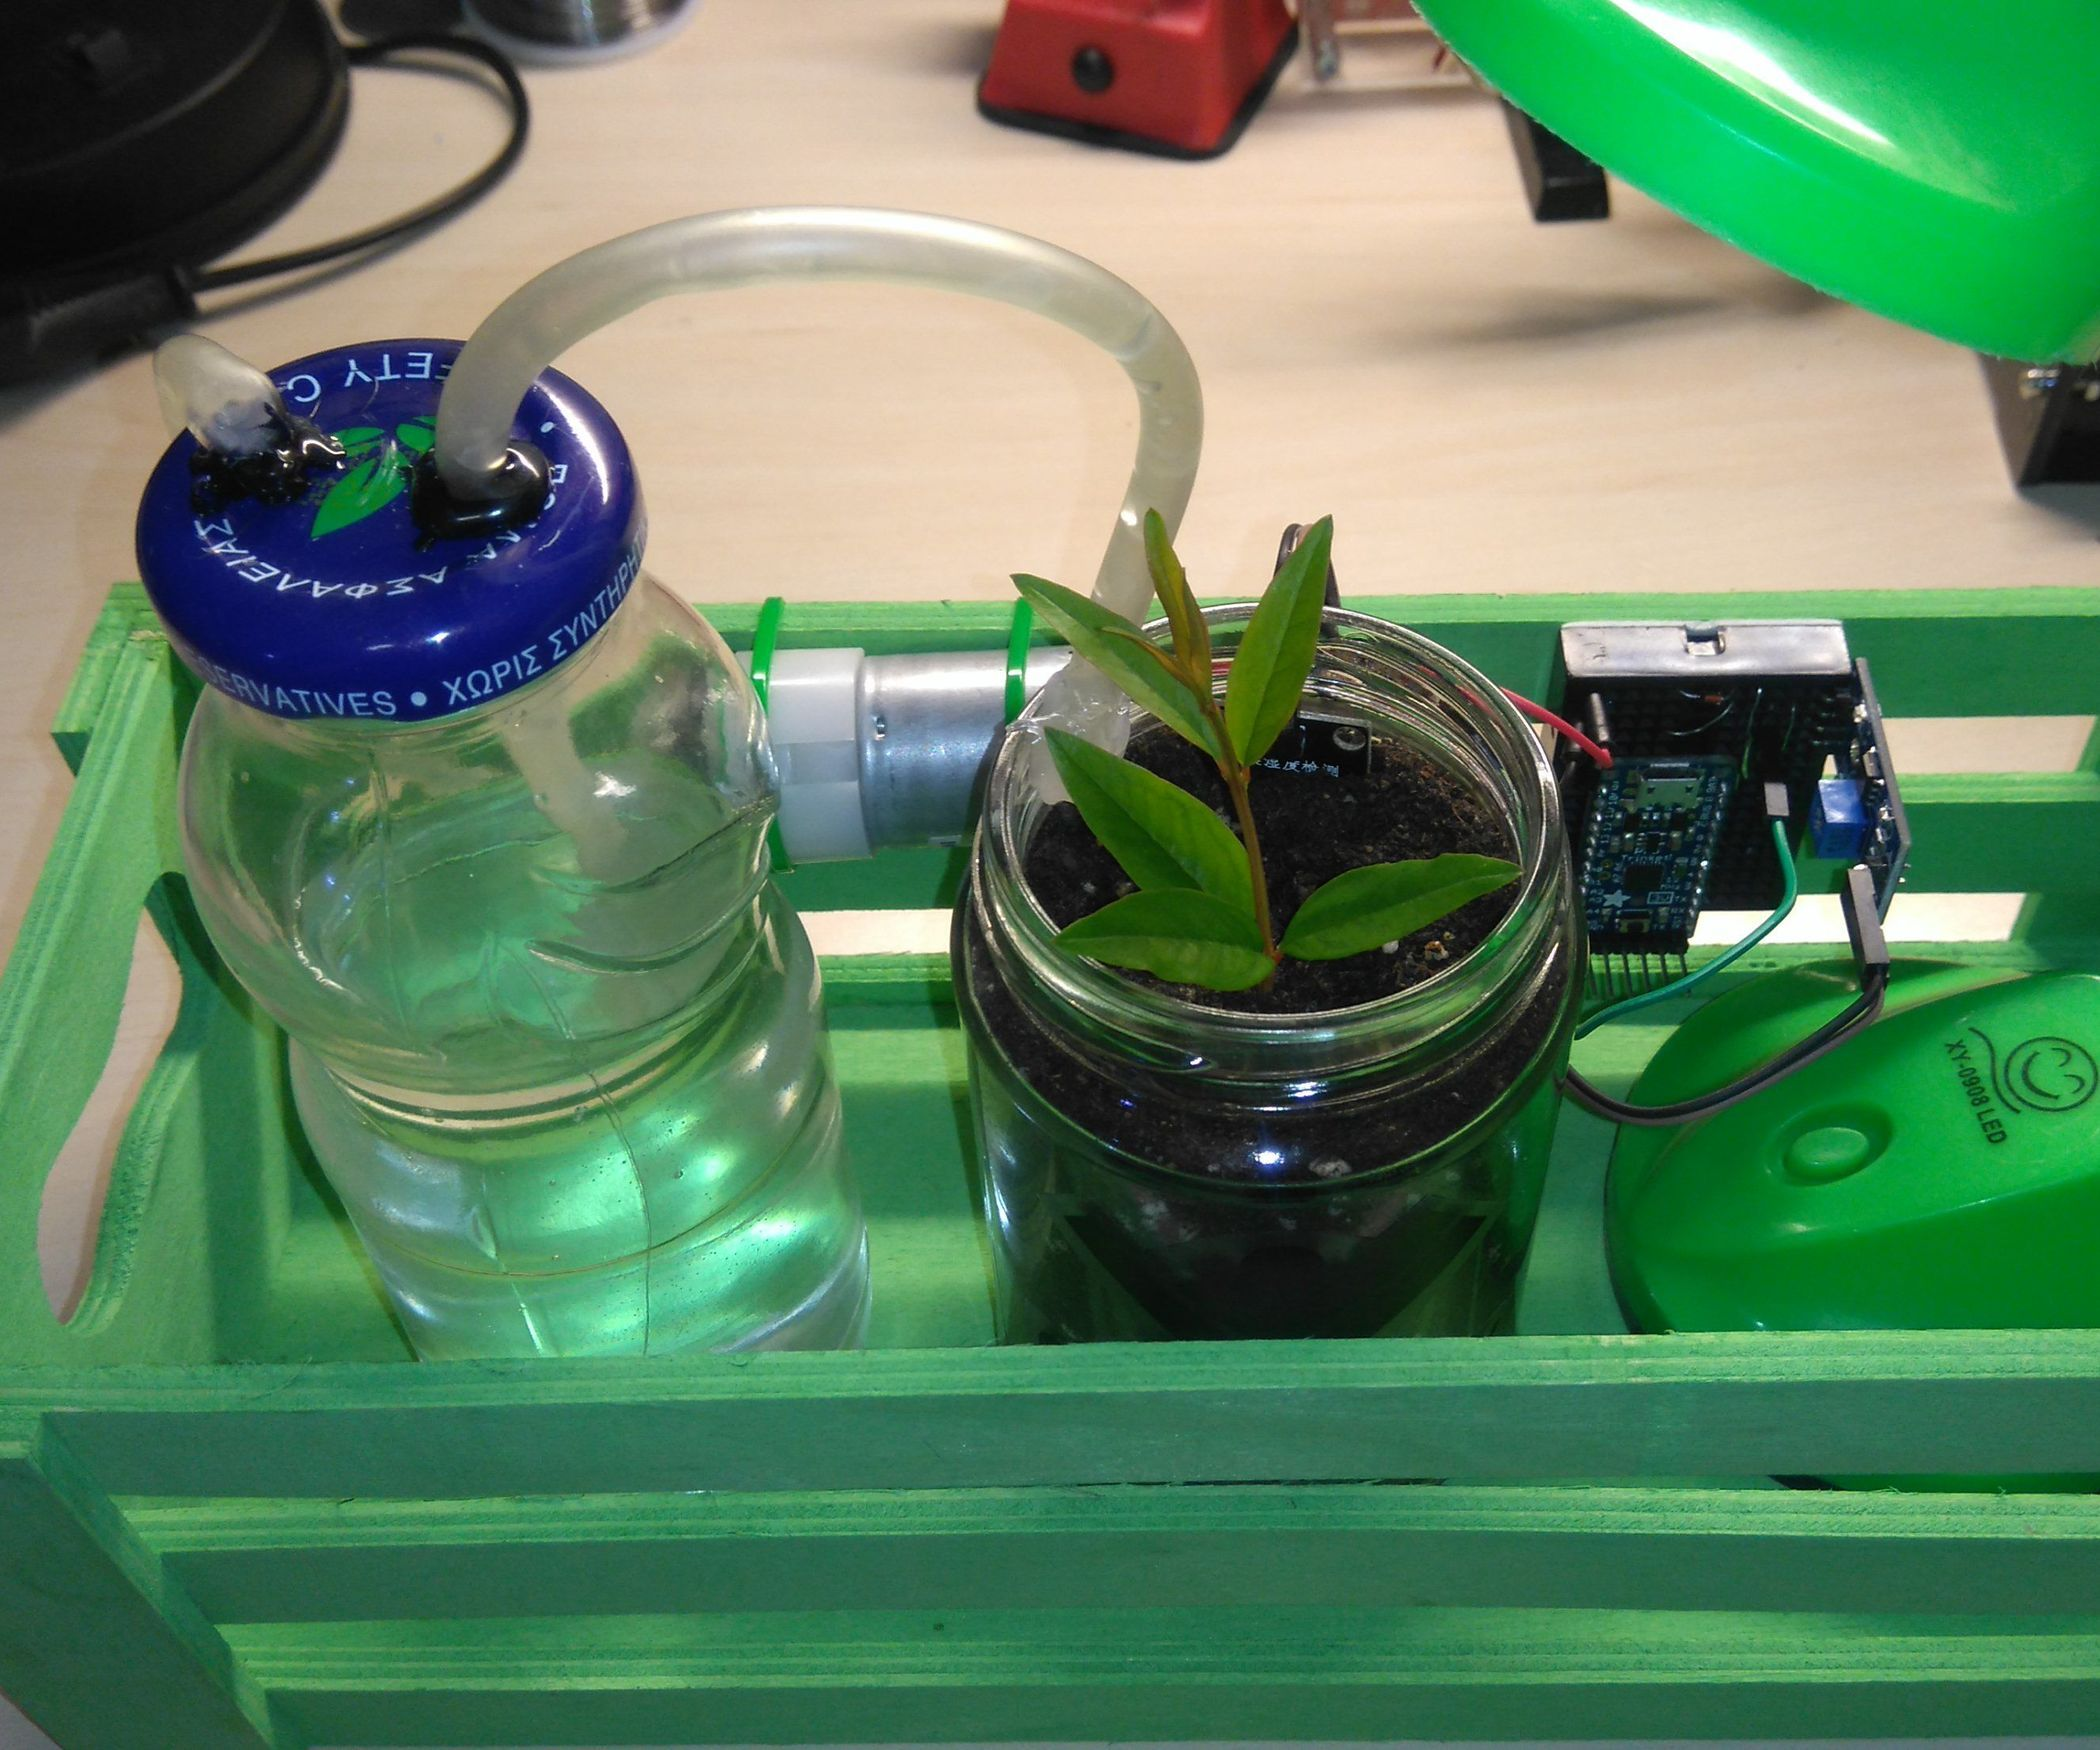 Automatic watering system for potted plants - Arduino Automatic Watering System